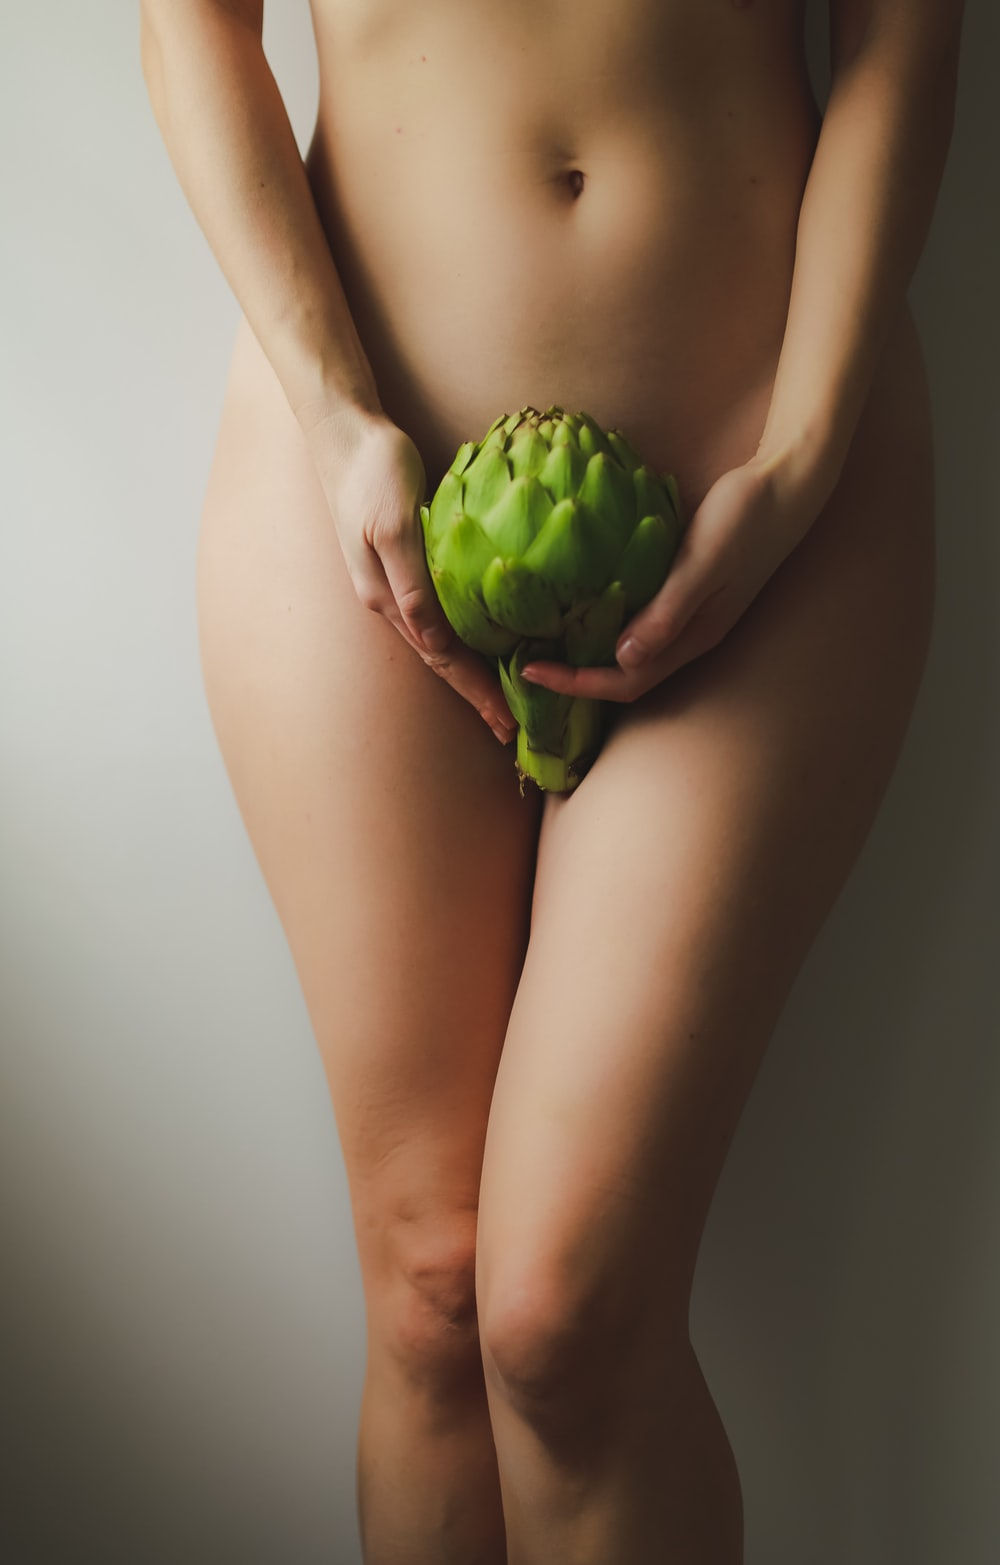 naked woman holding green fruit